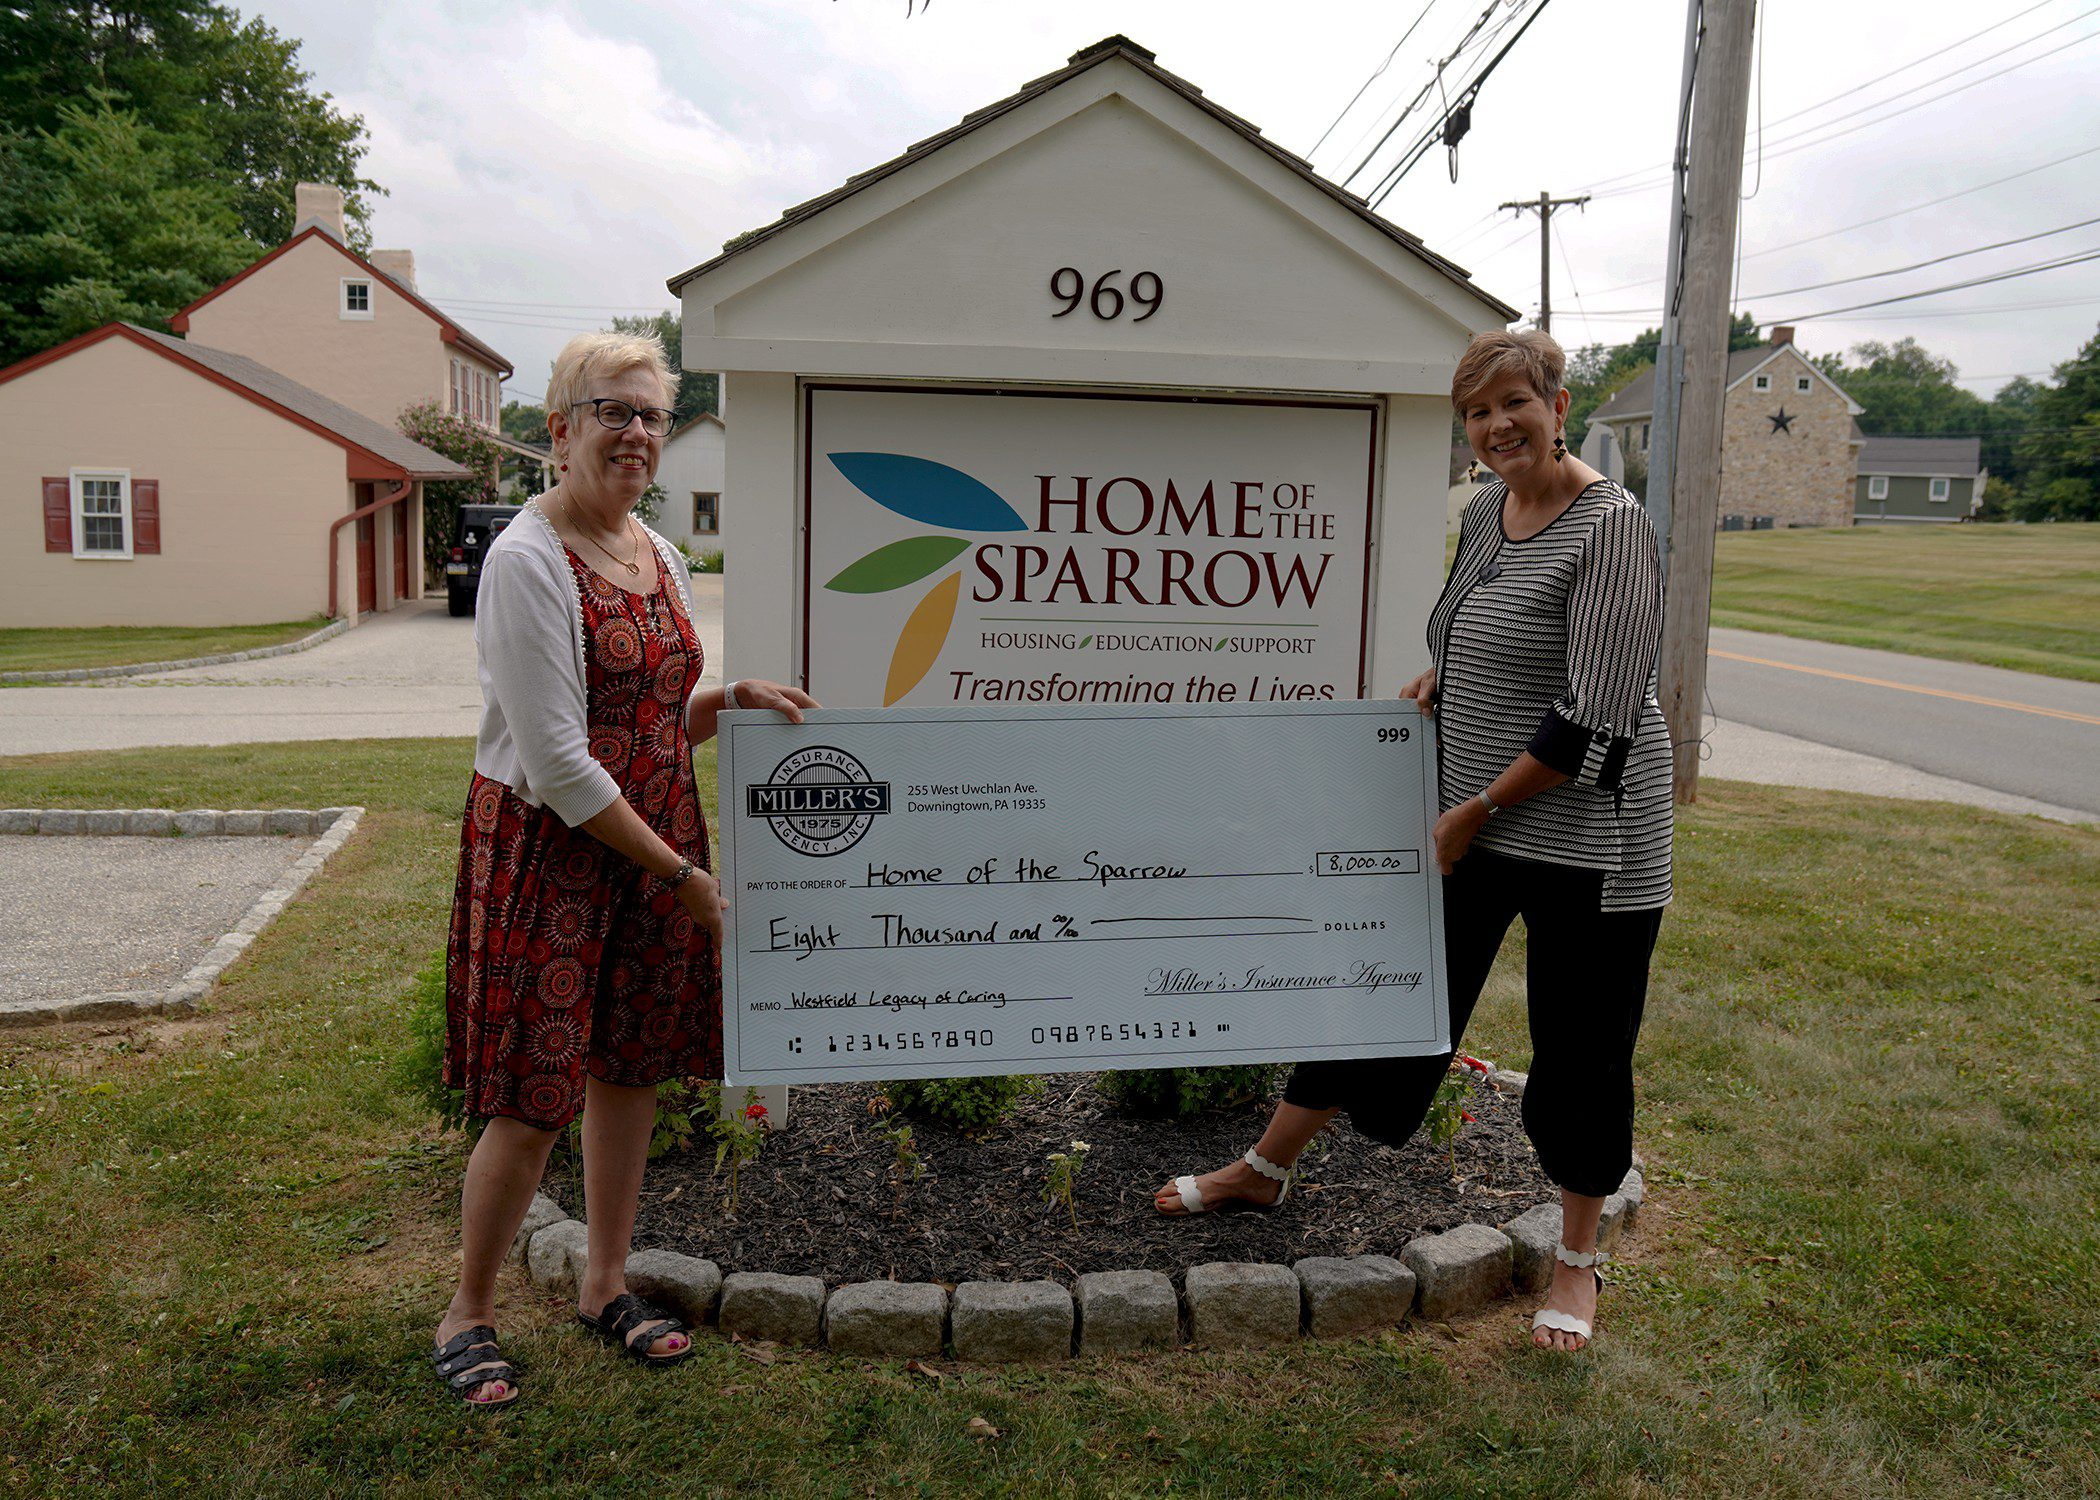 Westfield Legacy of Caring Home of the Sparrow Donation